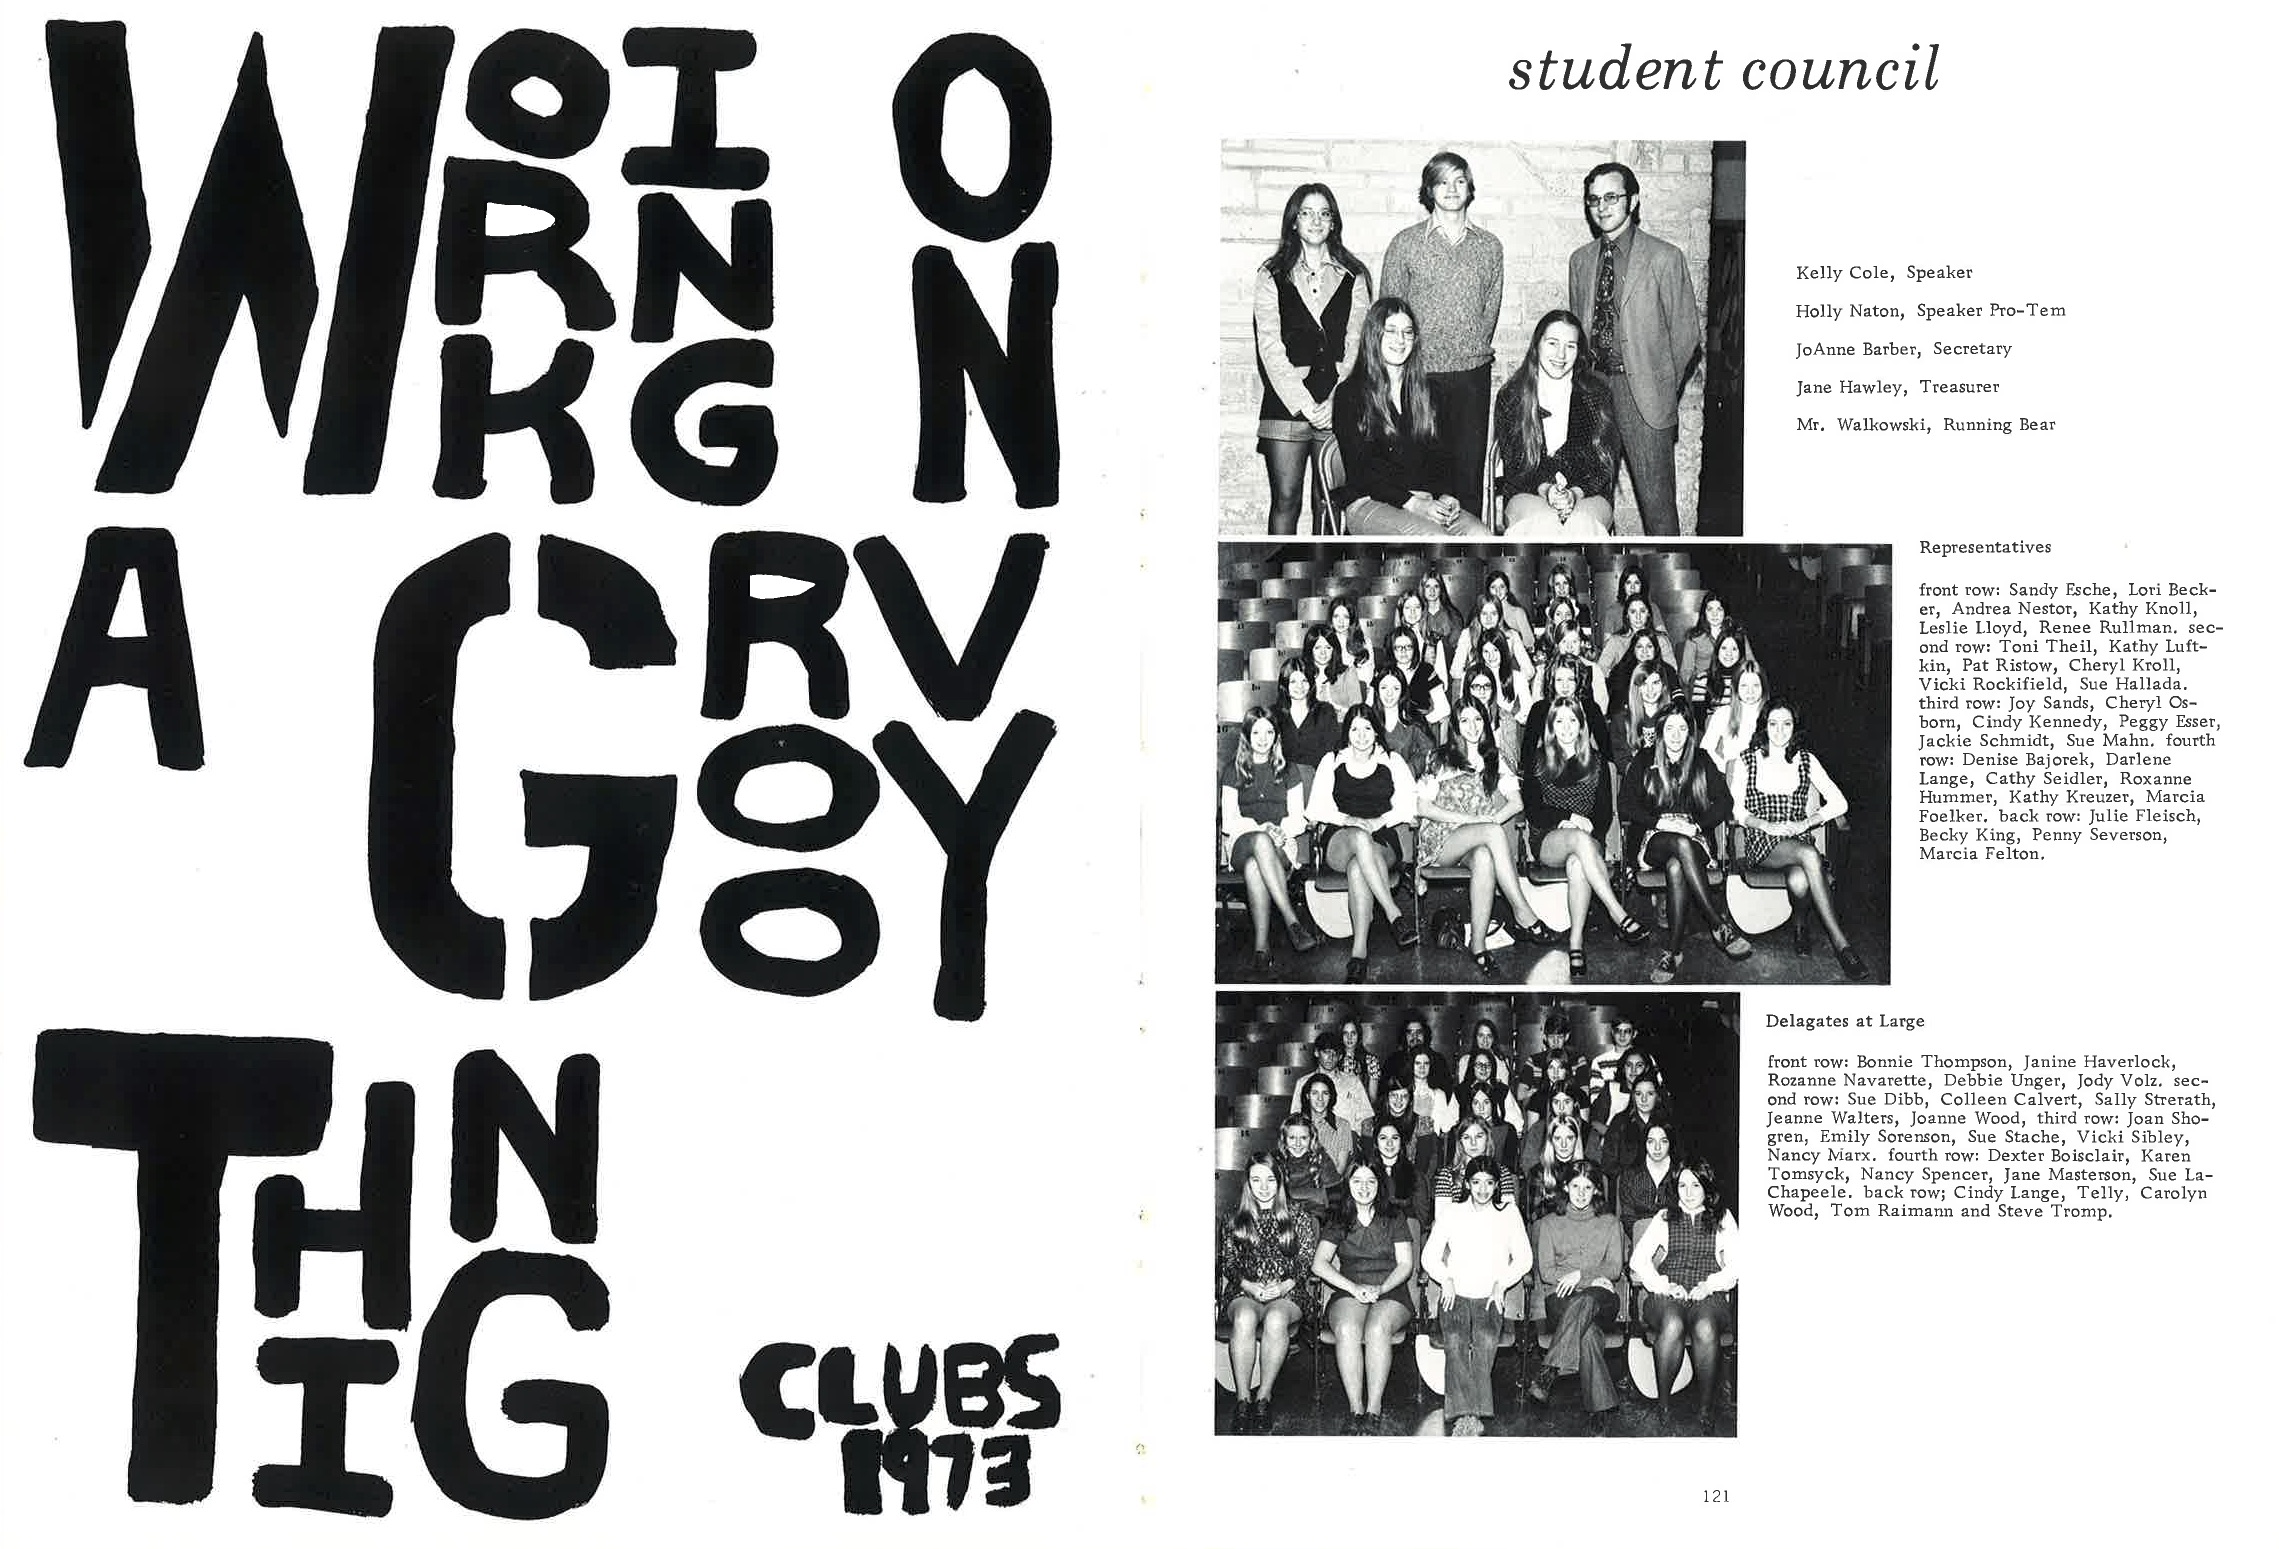 1973_Yearbook_120-121.jpg